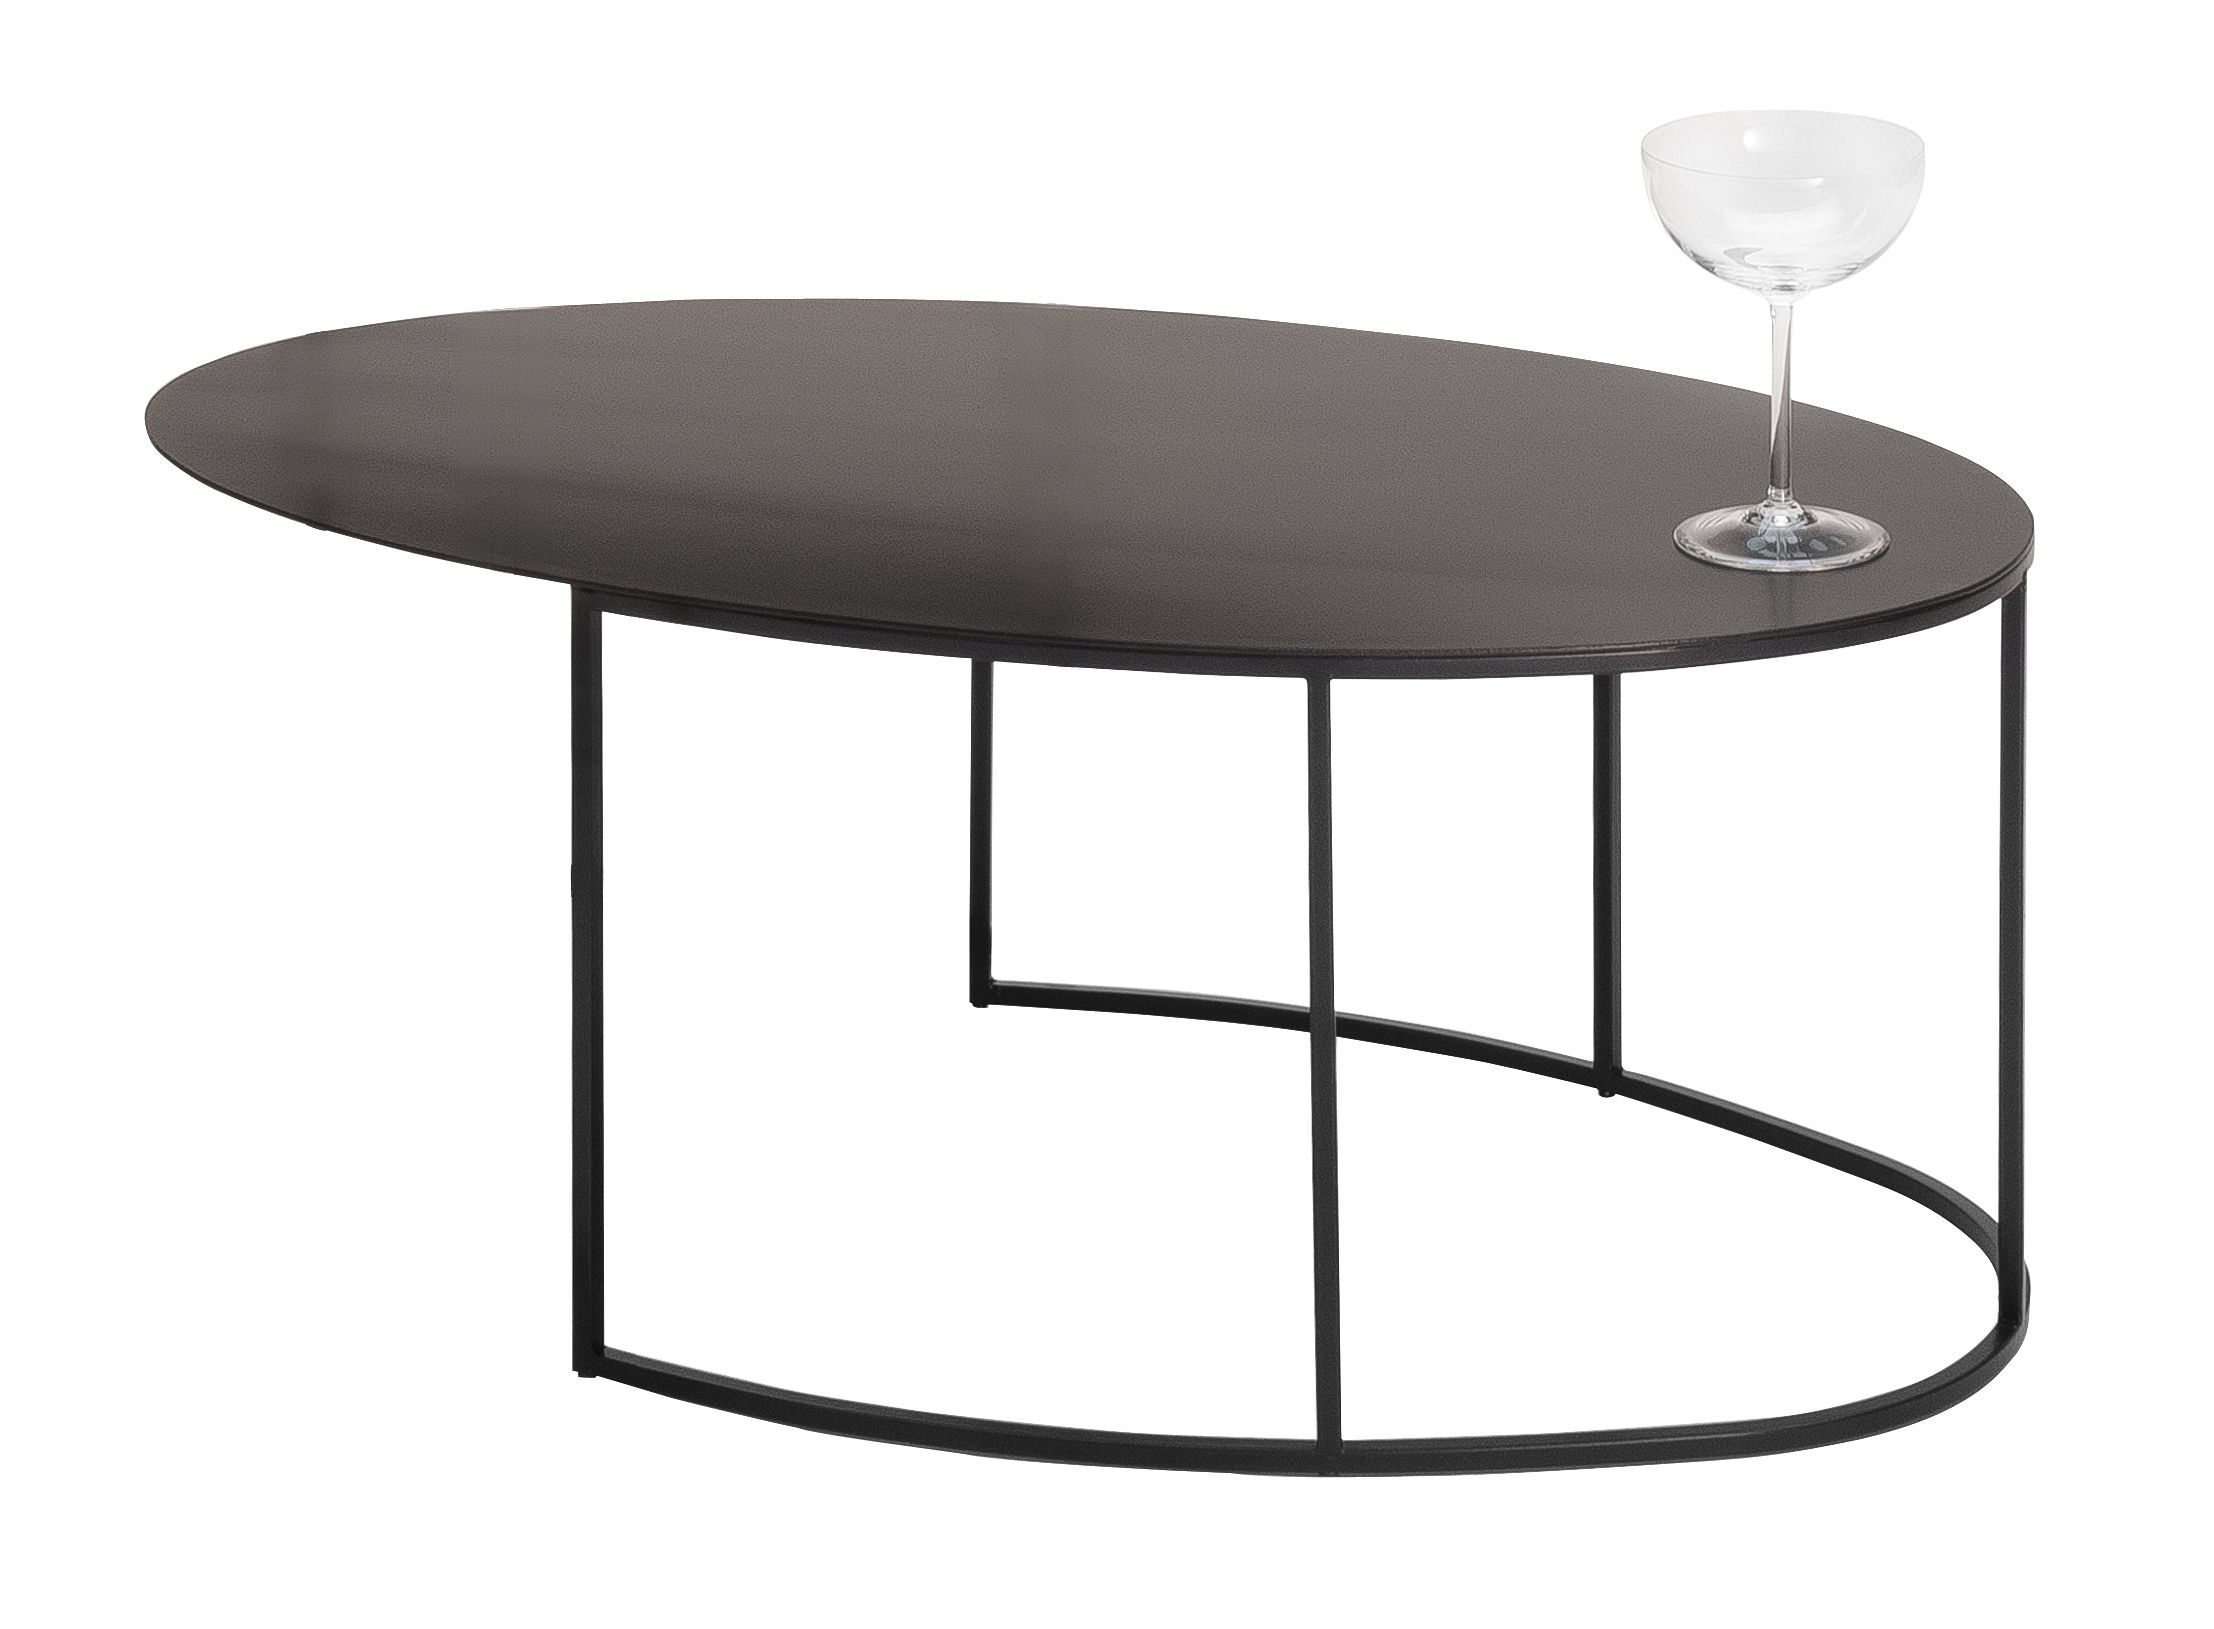 Leonardo Couchtisch Slim Irony Coffee Table - Oval - H 29 Cm 72 X 42 - Black